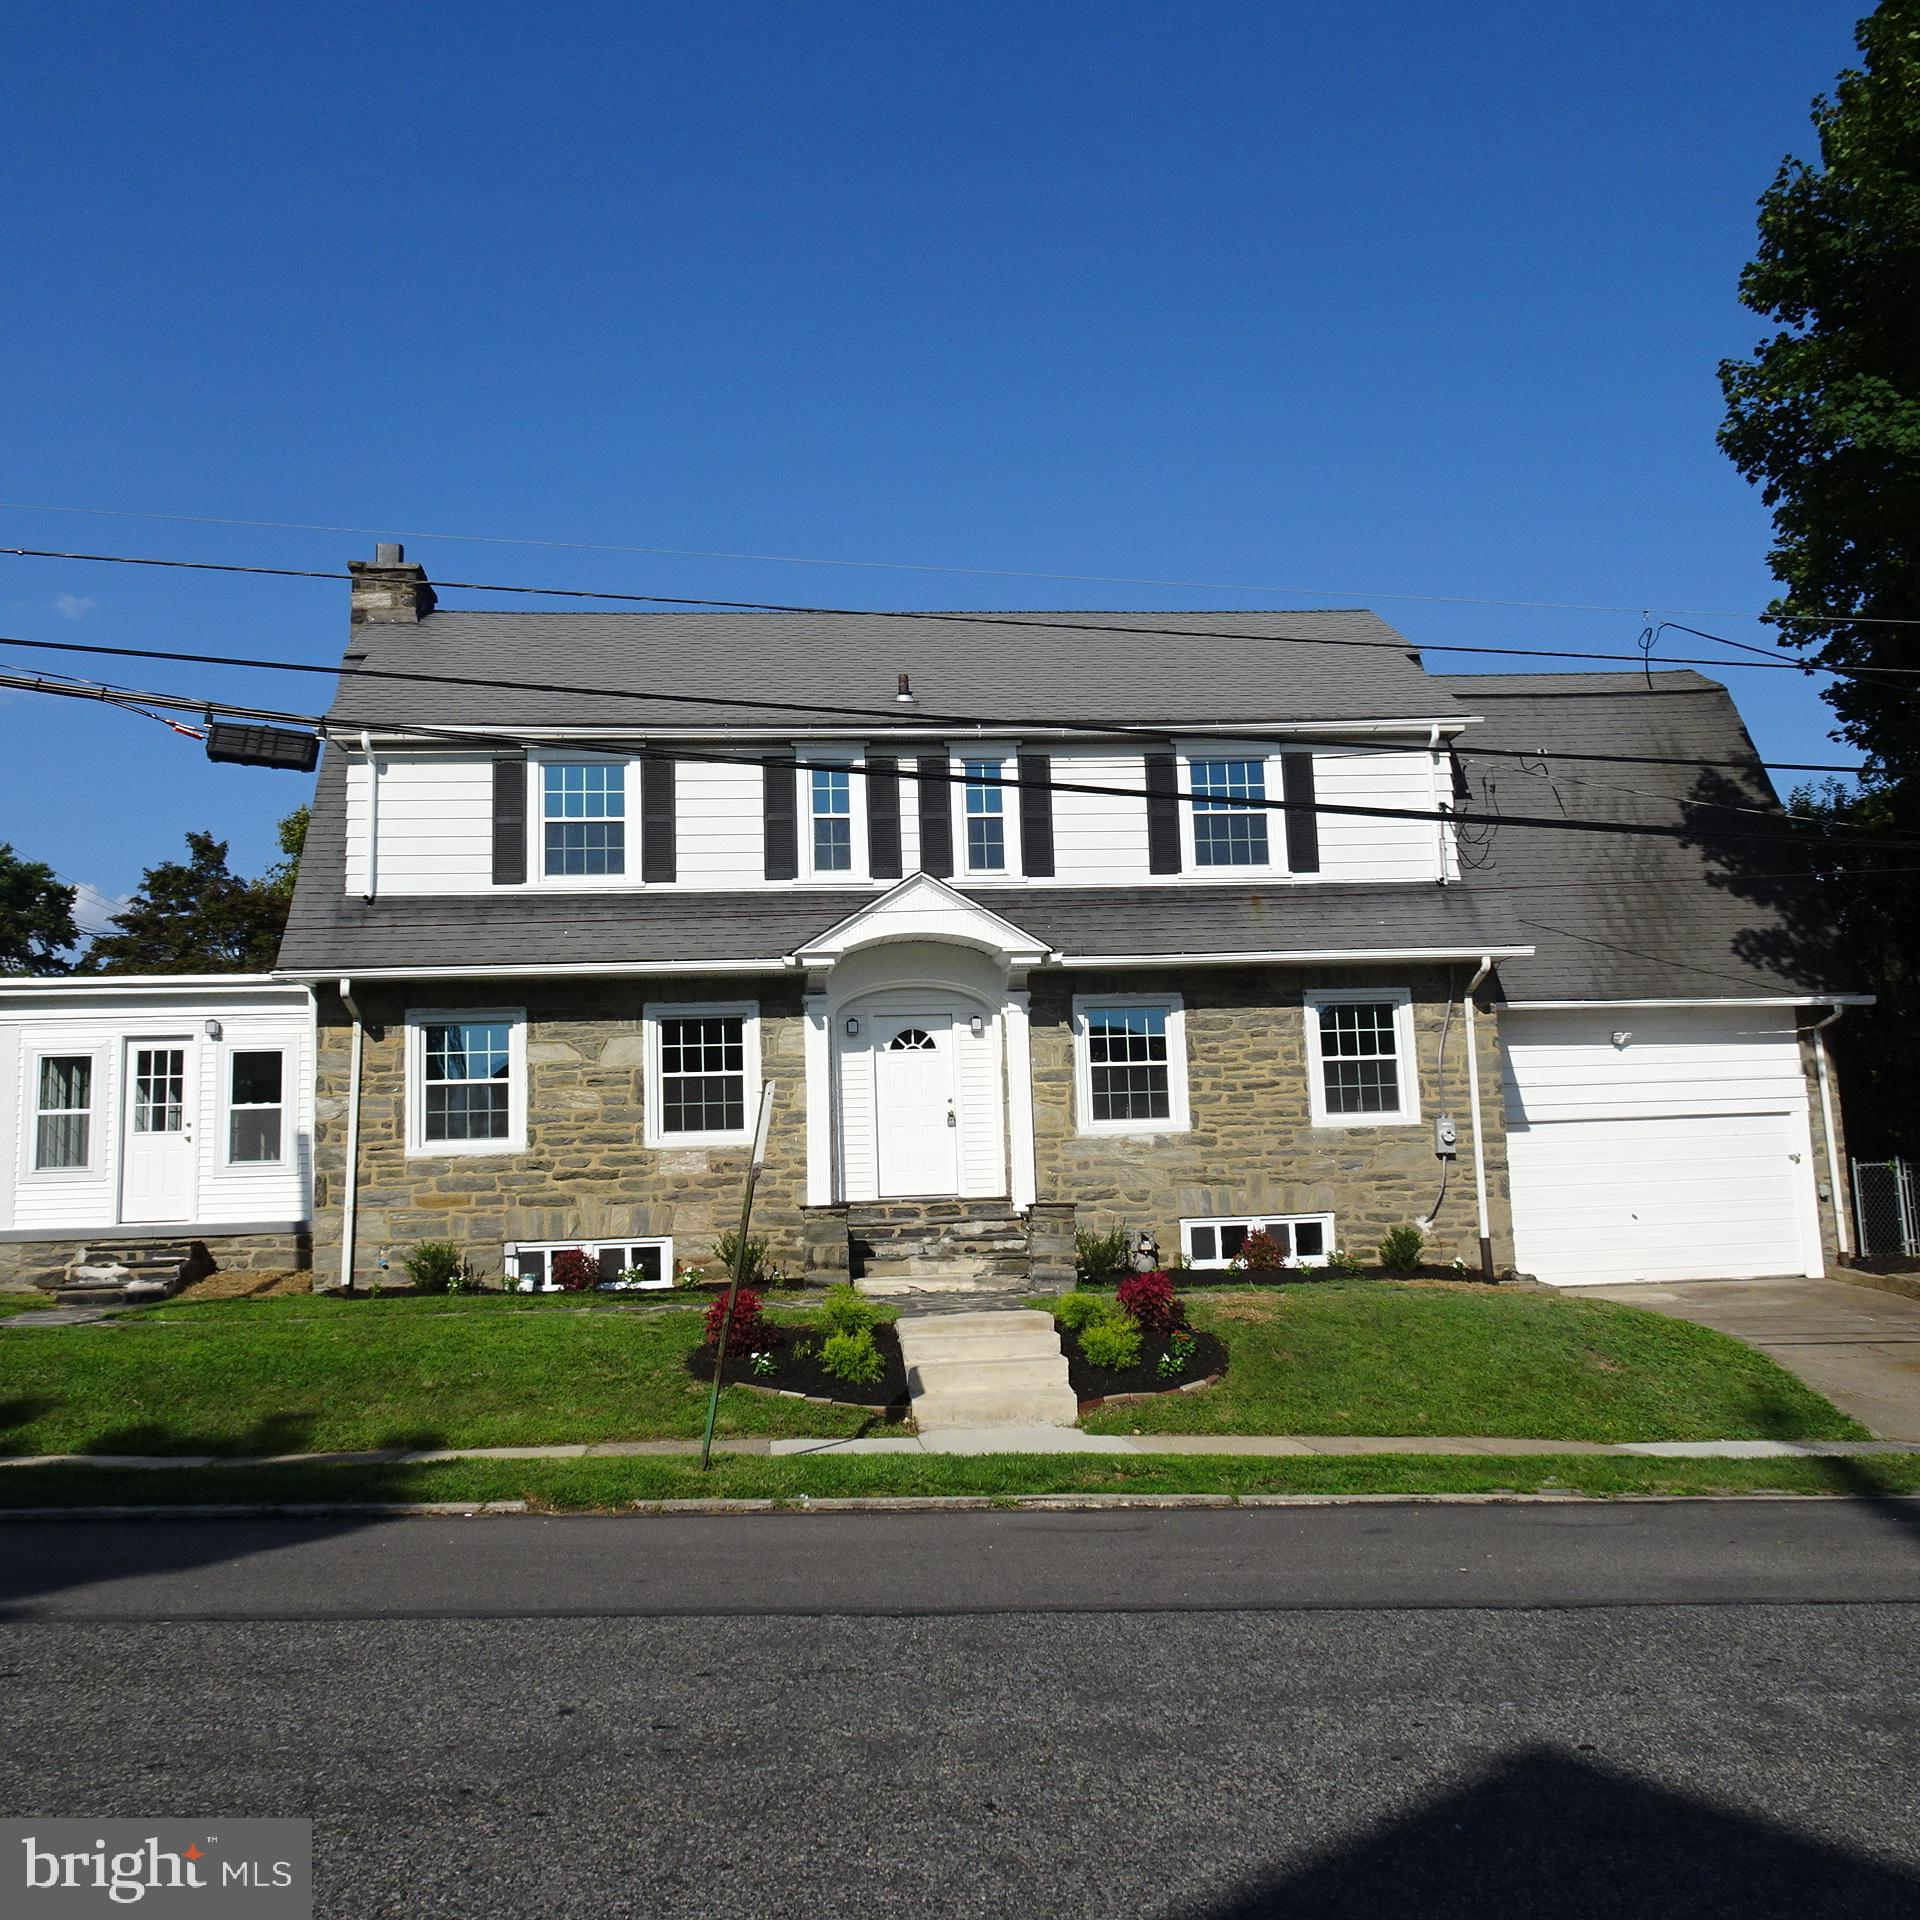 4314 STATE ROAD, DREXEL HILL, PA 19026